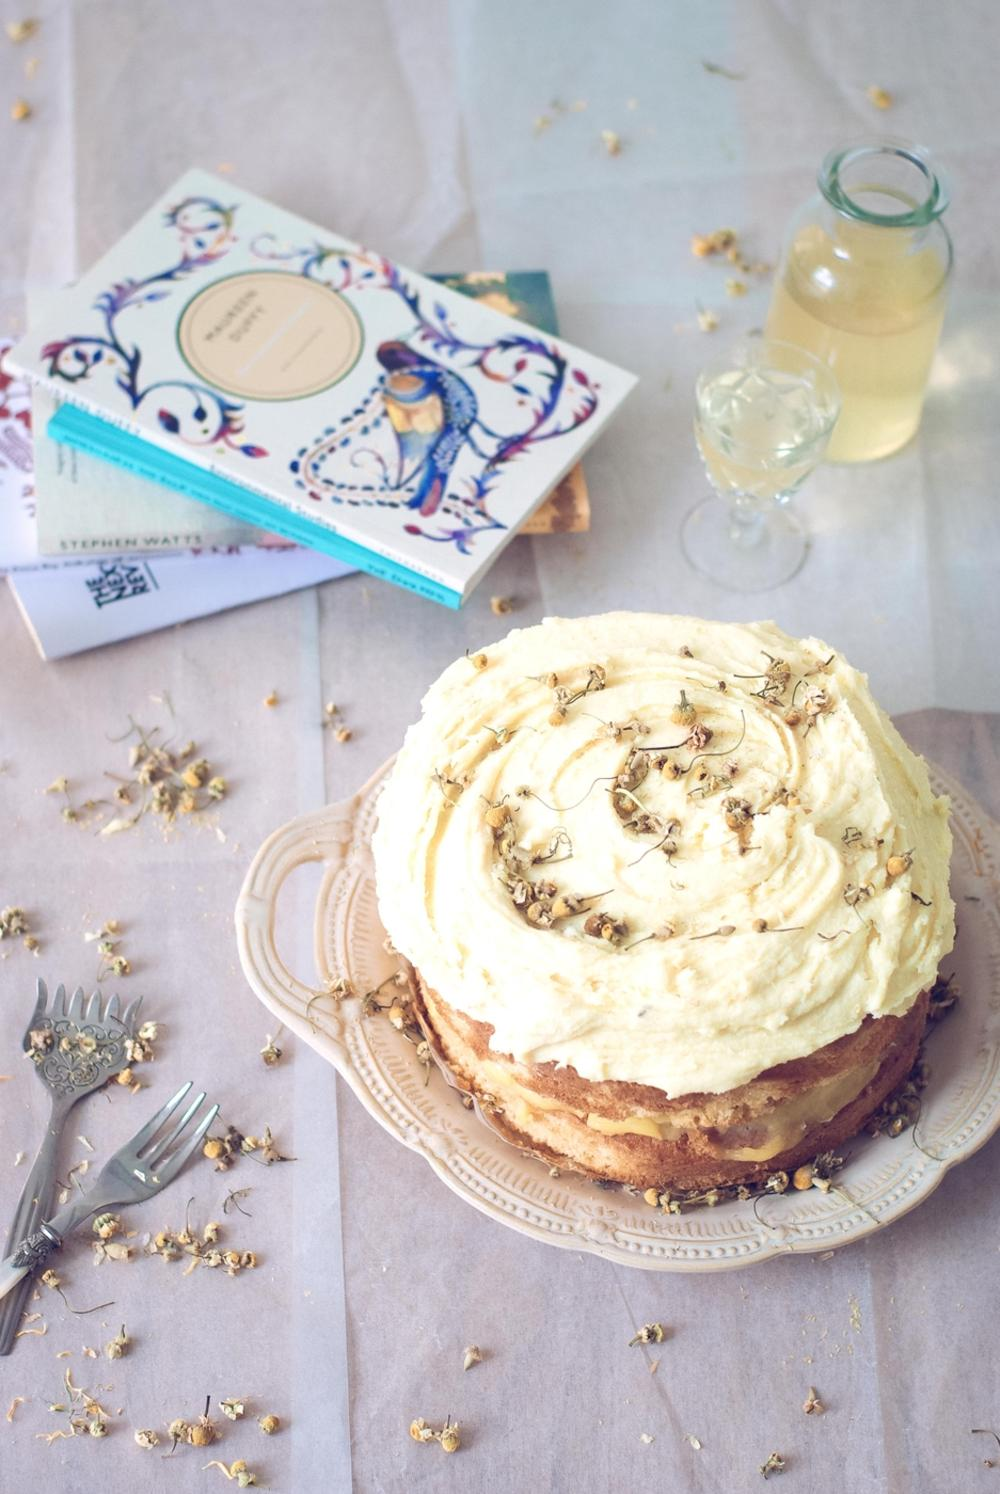 POETRY AND CAKES